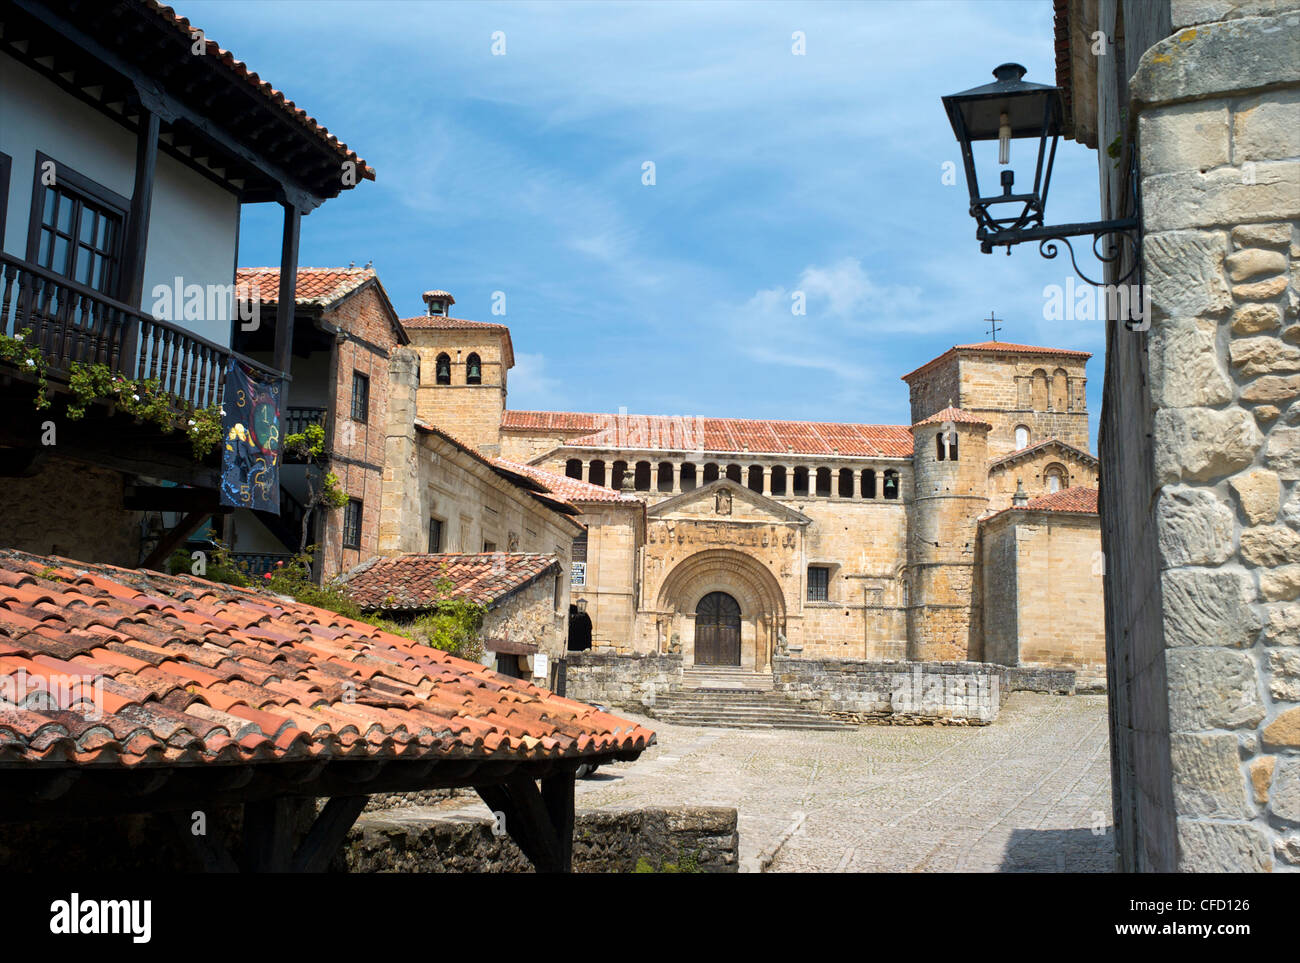 Santillana del Mar, Cantabria, Spain, Europe Stock Photo